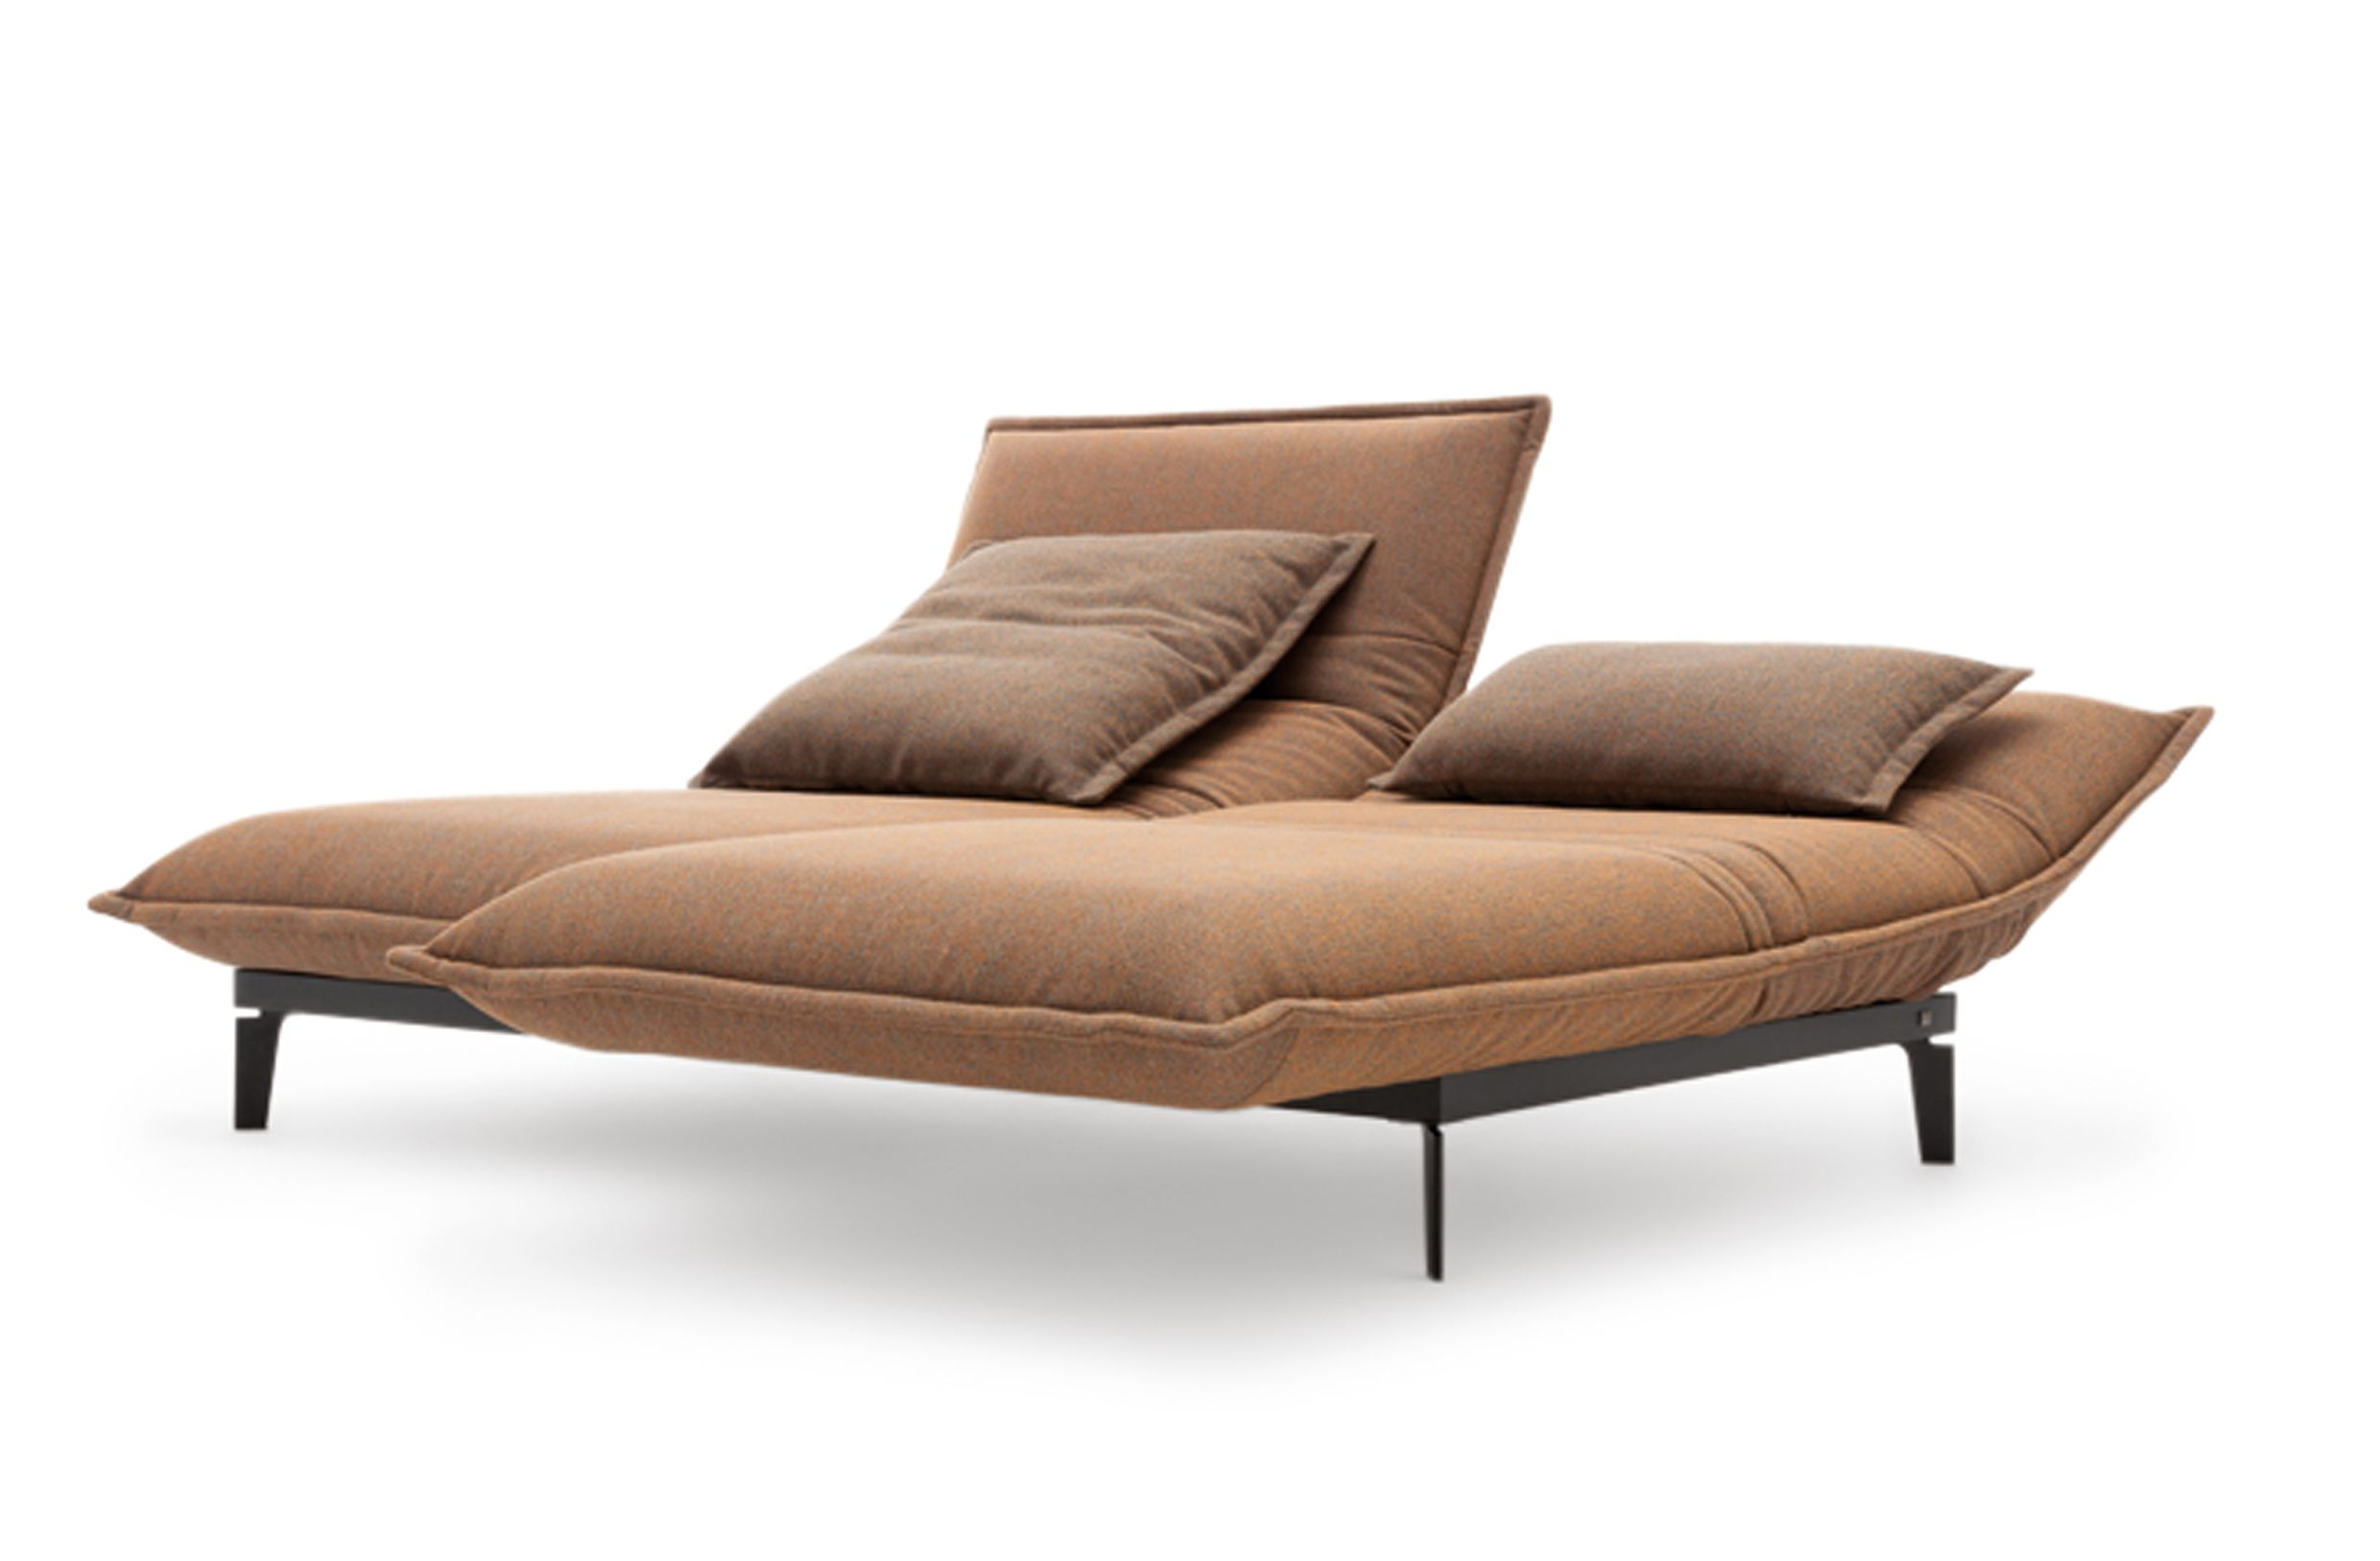 Rolf Benz Eckcouch Rolf Benz Nova Reclining Sofa Rolf Benz Studio Boston Ma Rolf